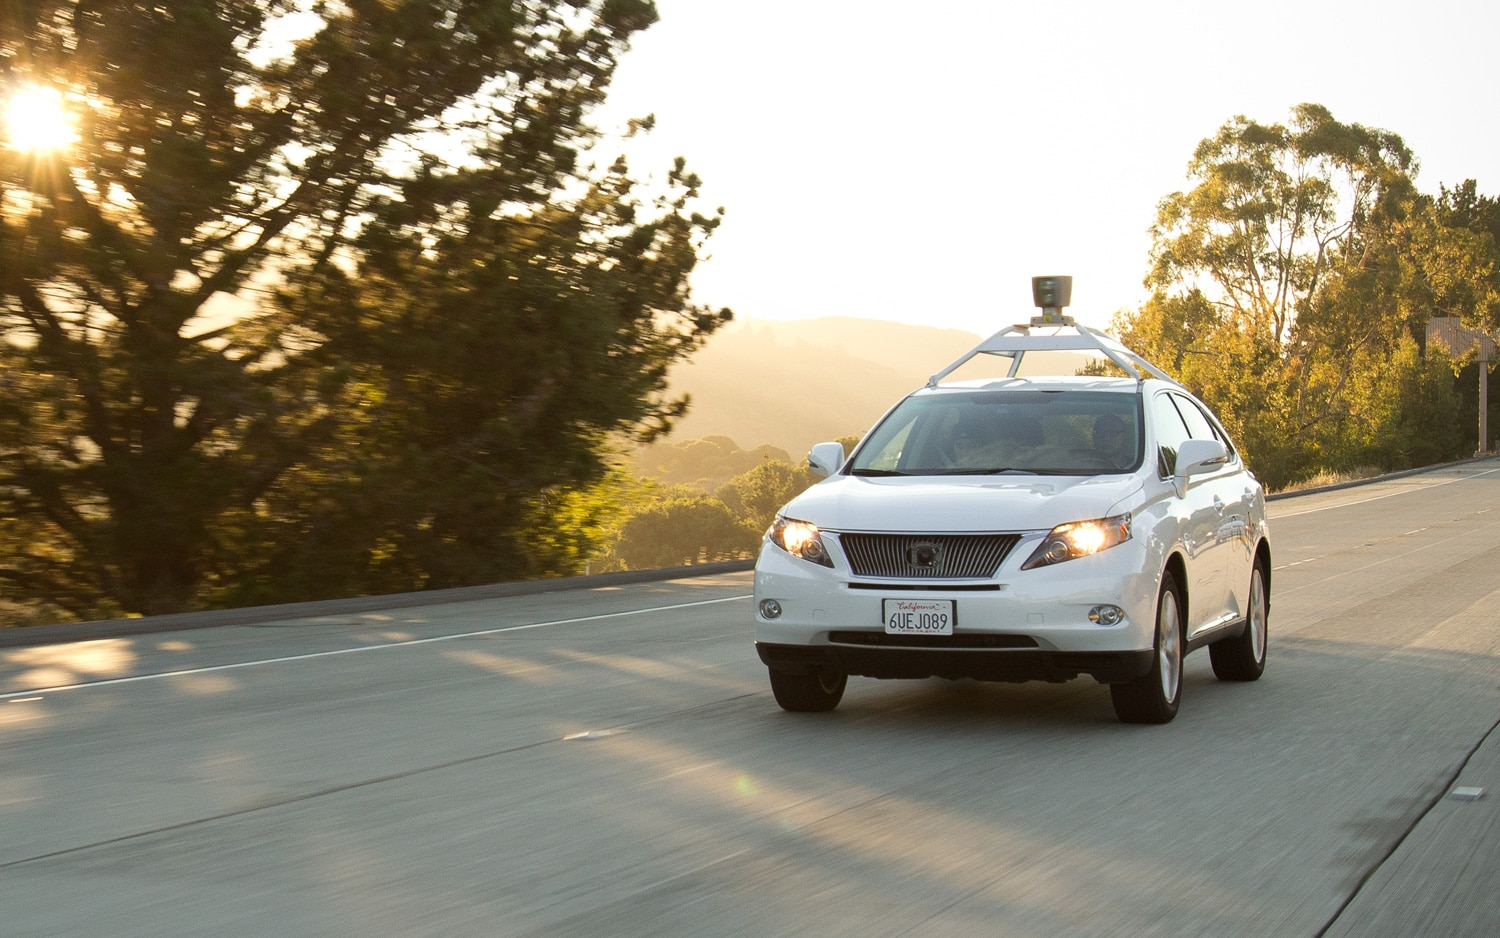 California Dmv Details Google Autonomous Car Accidents